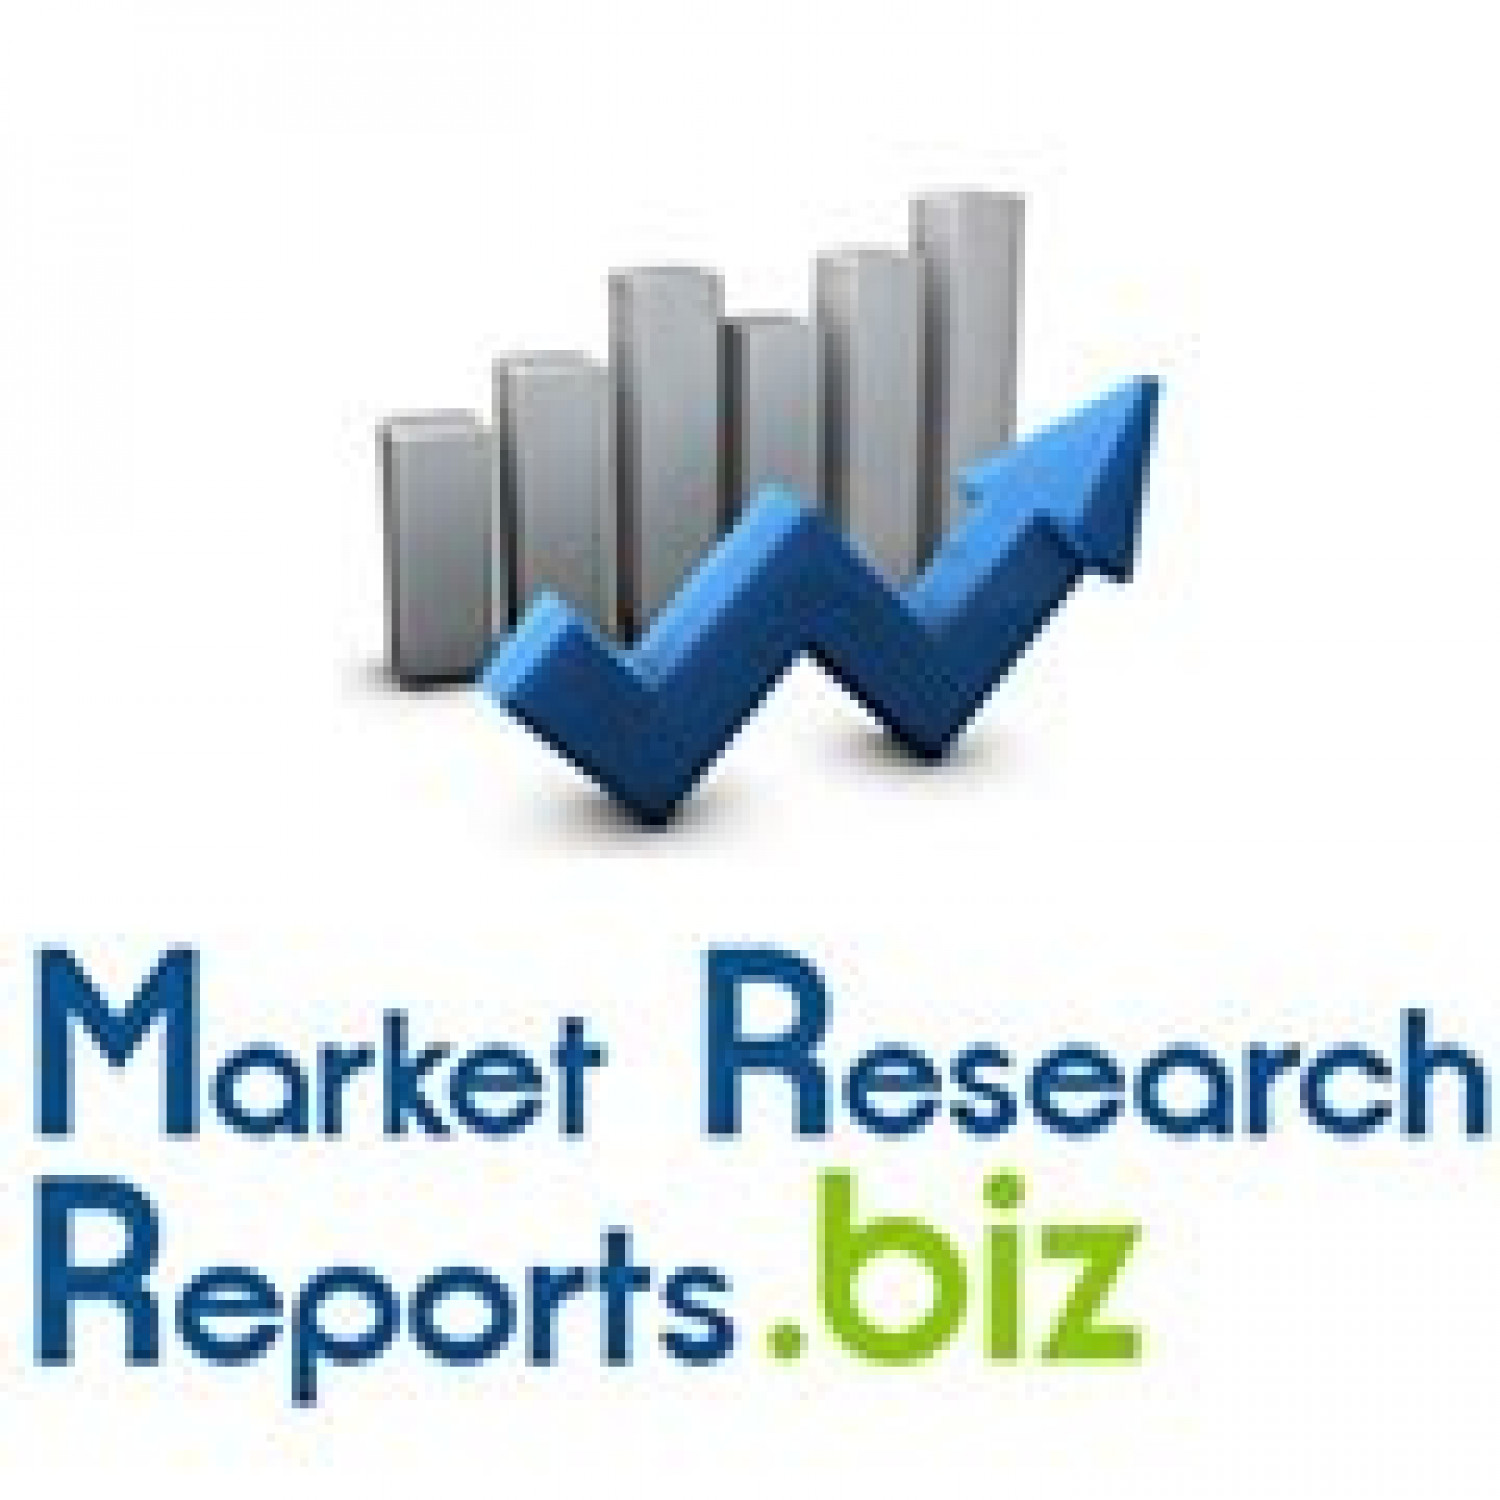 Permanent Magnets (Ferrite, NdFeB, SmCo And Alnico) Market For Automotive, Electronics, Energy Generation And Other Applications - Global Forecast, Market Share, Size, Growth And Industry Analysis, 2013 - 2019 Infographic